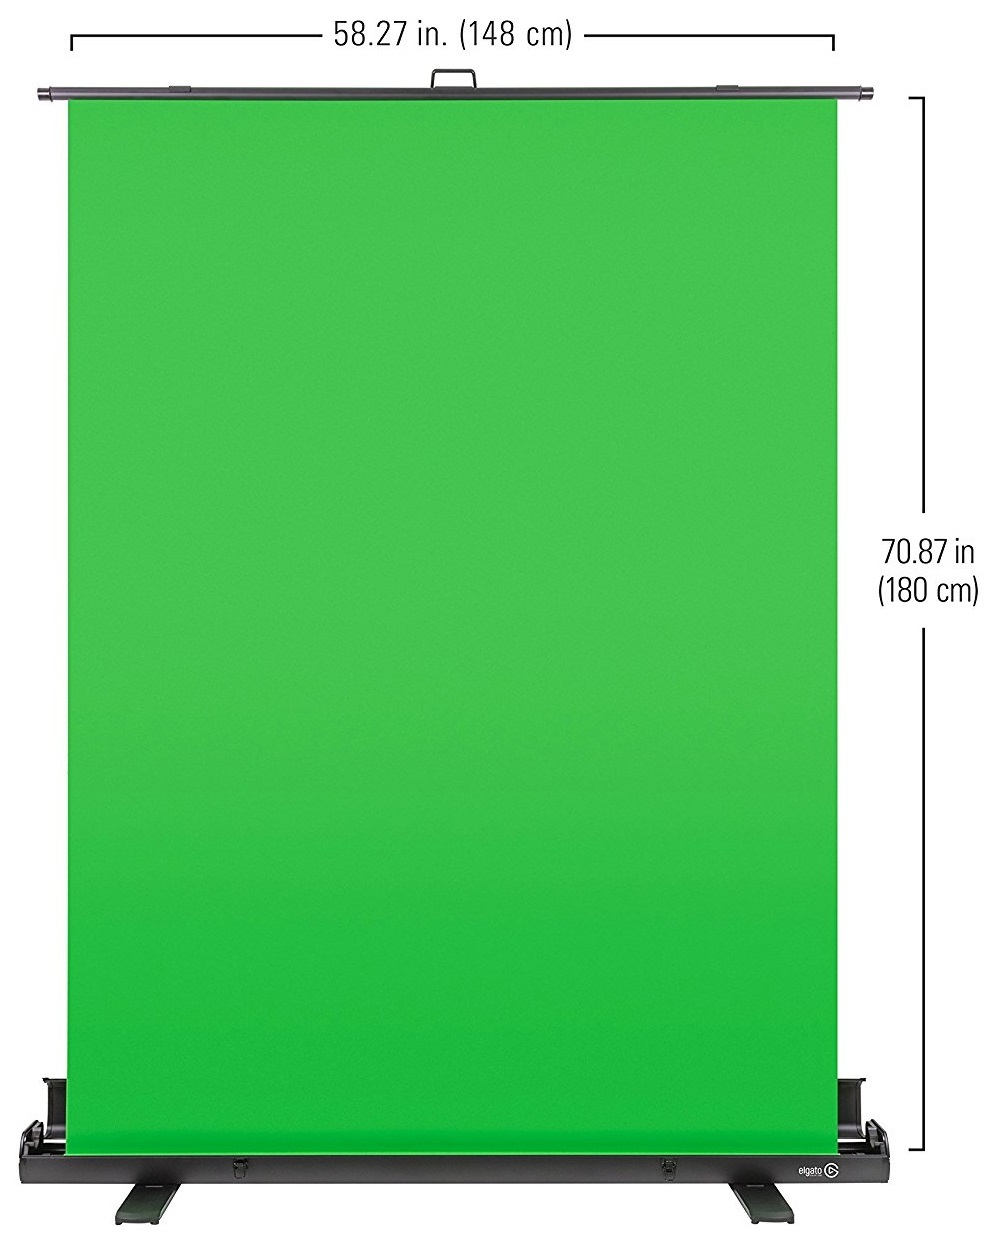 Elgato Green Screen image